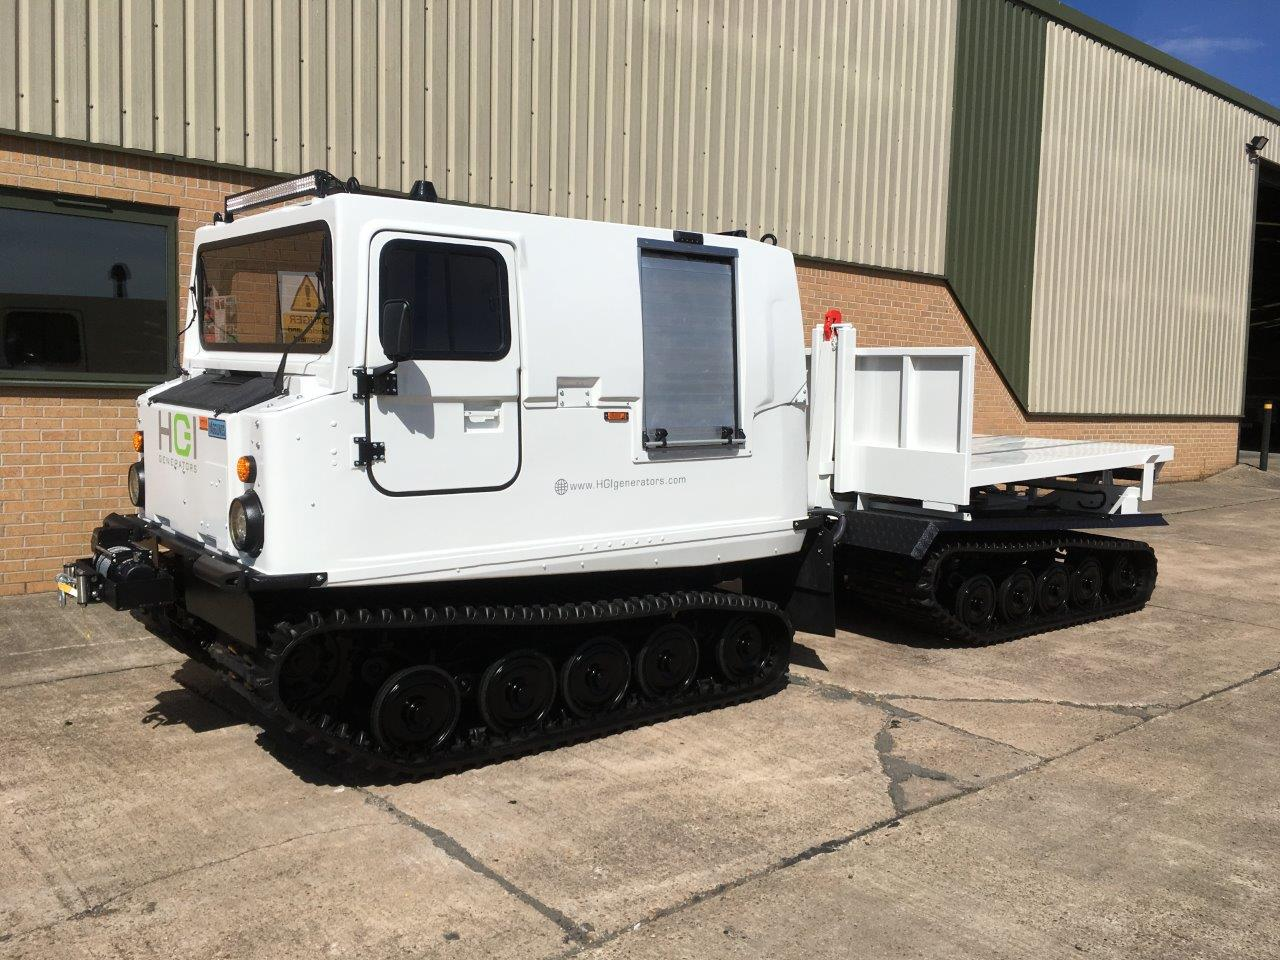 Hagglund Bv206 DROPS Body Unit for sale